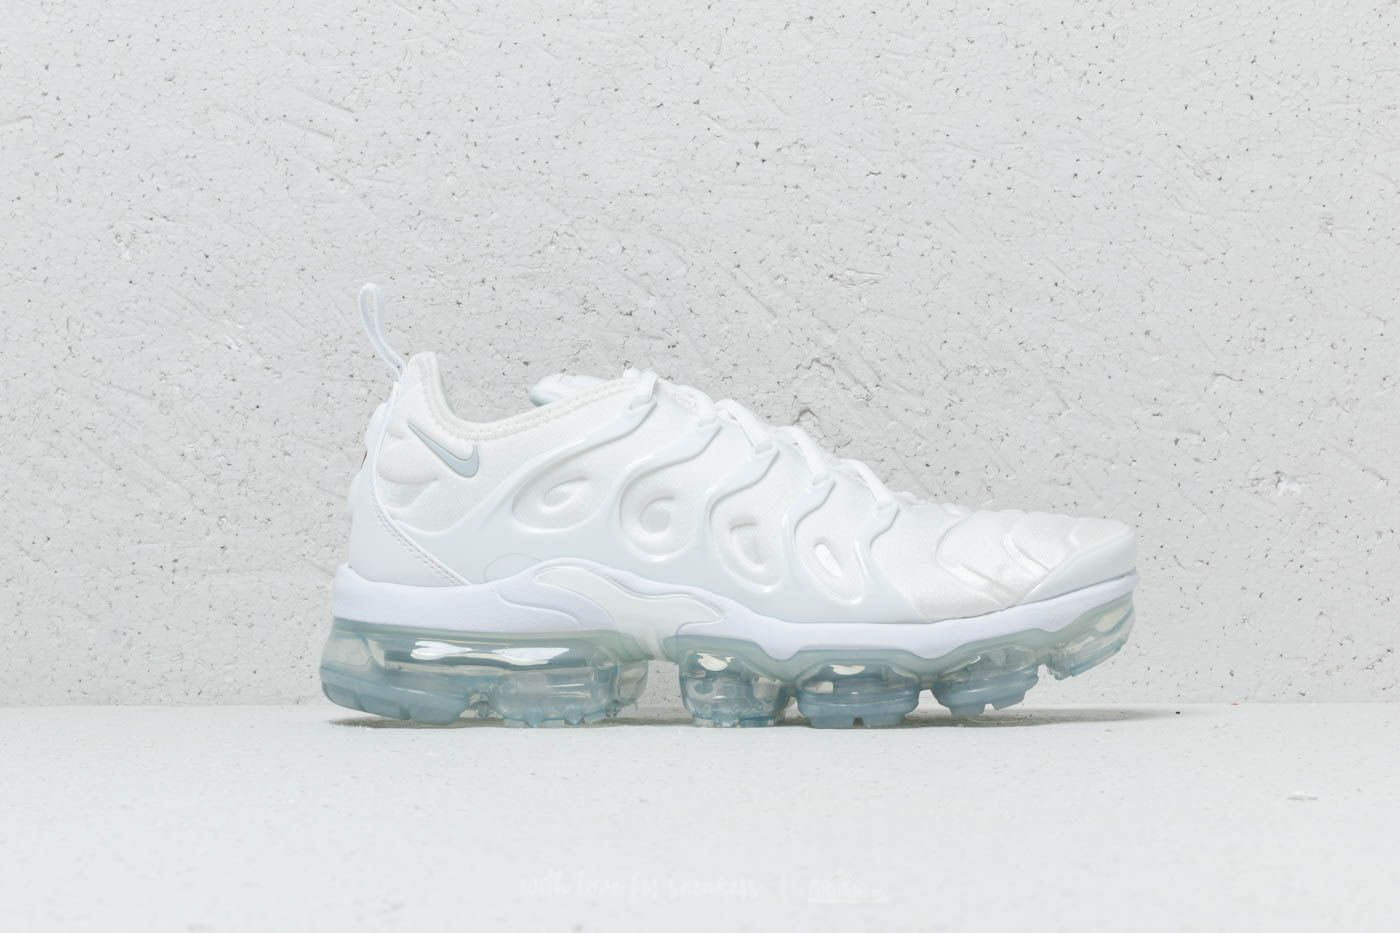 quality design 2c70e ff0c4 Nike Air Vapormax Plus White  White-Pure Platinum at a great price 209 €